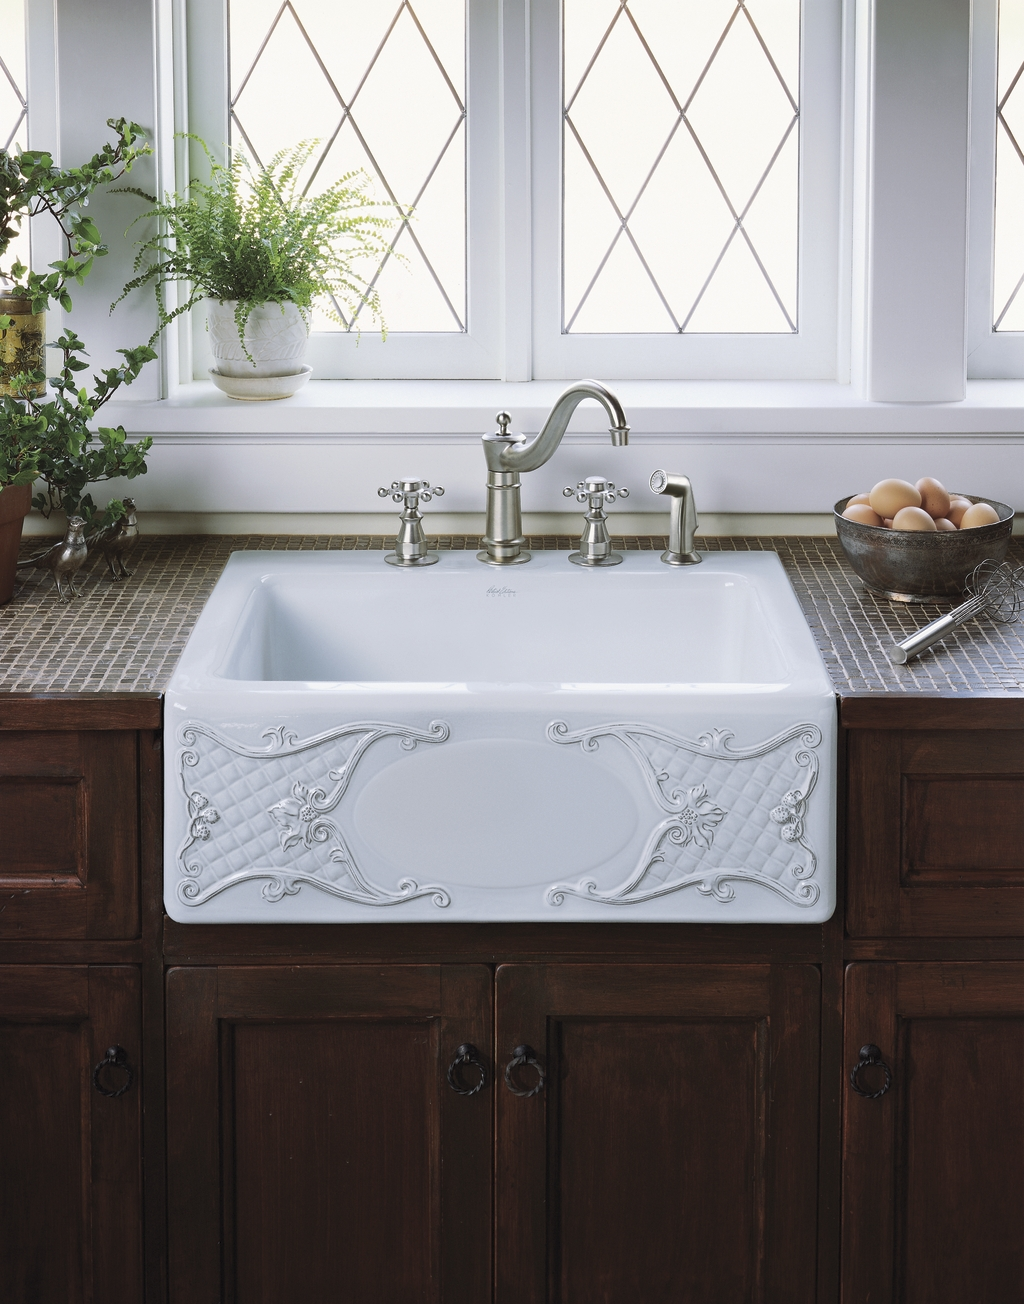 Cupboards Kitchen And Bath: Apron Sink Trends